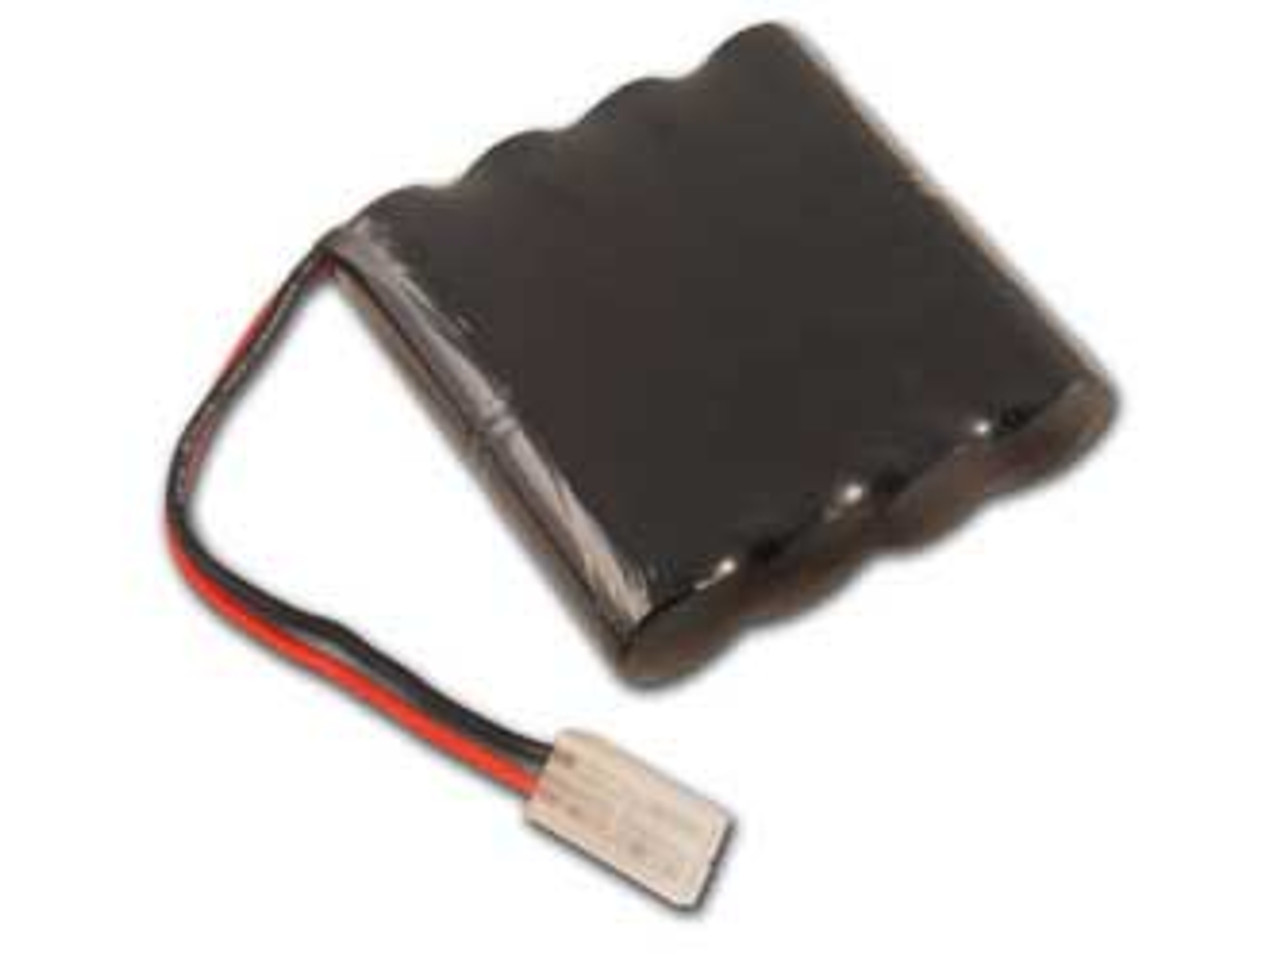 AT: Tenergy 9.6V 4200mAh NiMH Rechargeable Battery Pack (8S1P, 40.3Wh, 30A Rate, Tamiya Connector)